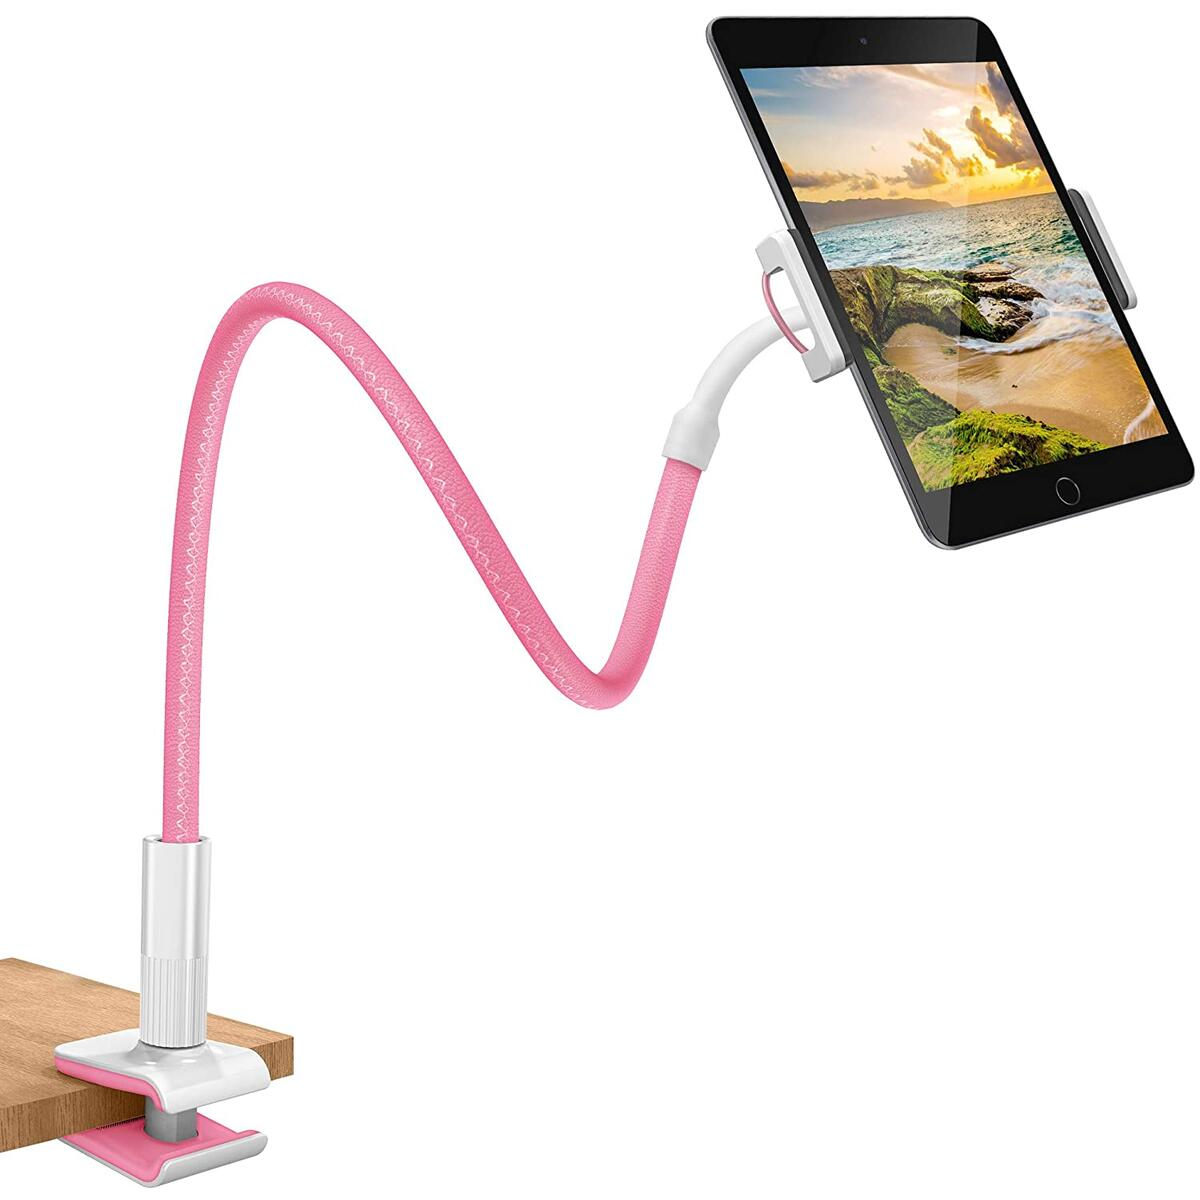 Deluxe Gooseneck Phone & Tablet Holder for Desk, Night Stand, Headboard - Pink